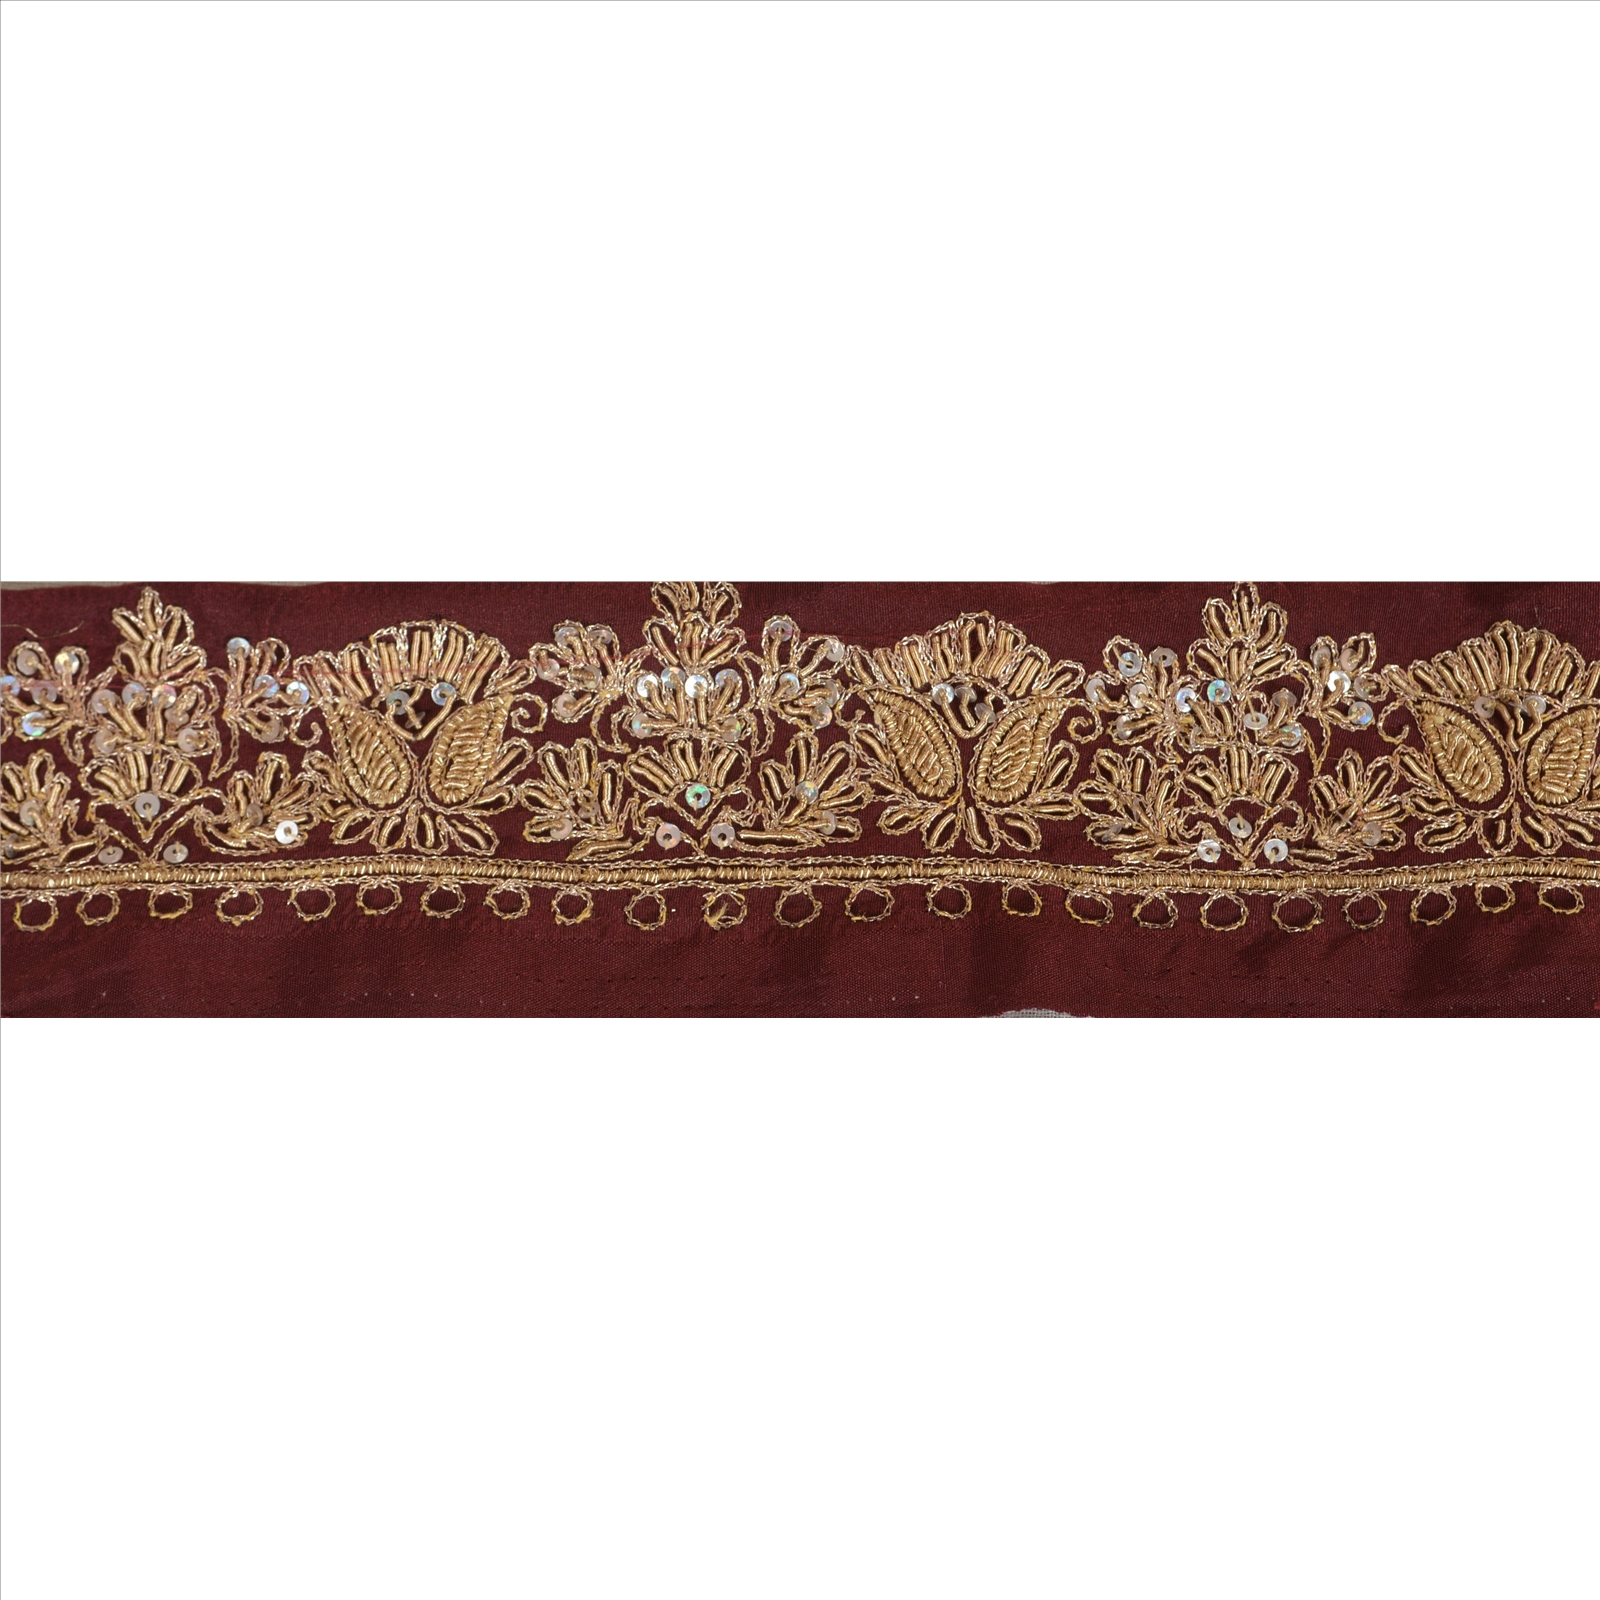 Just Vintage Sari Border Antique Hand Beaded Indian Trim Sewing Maroon Lace Easy To Use Lace, Crochet & Doilies